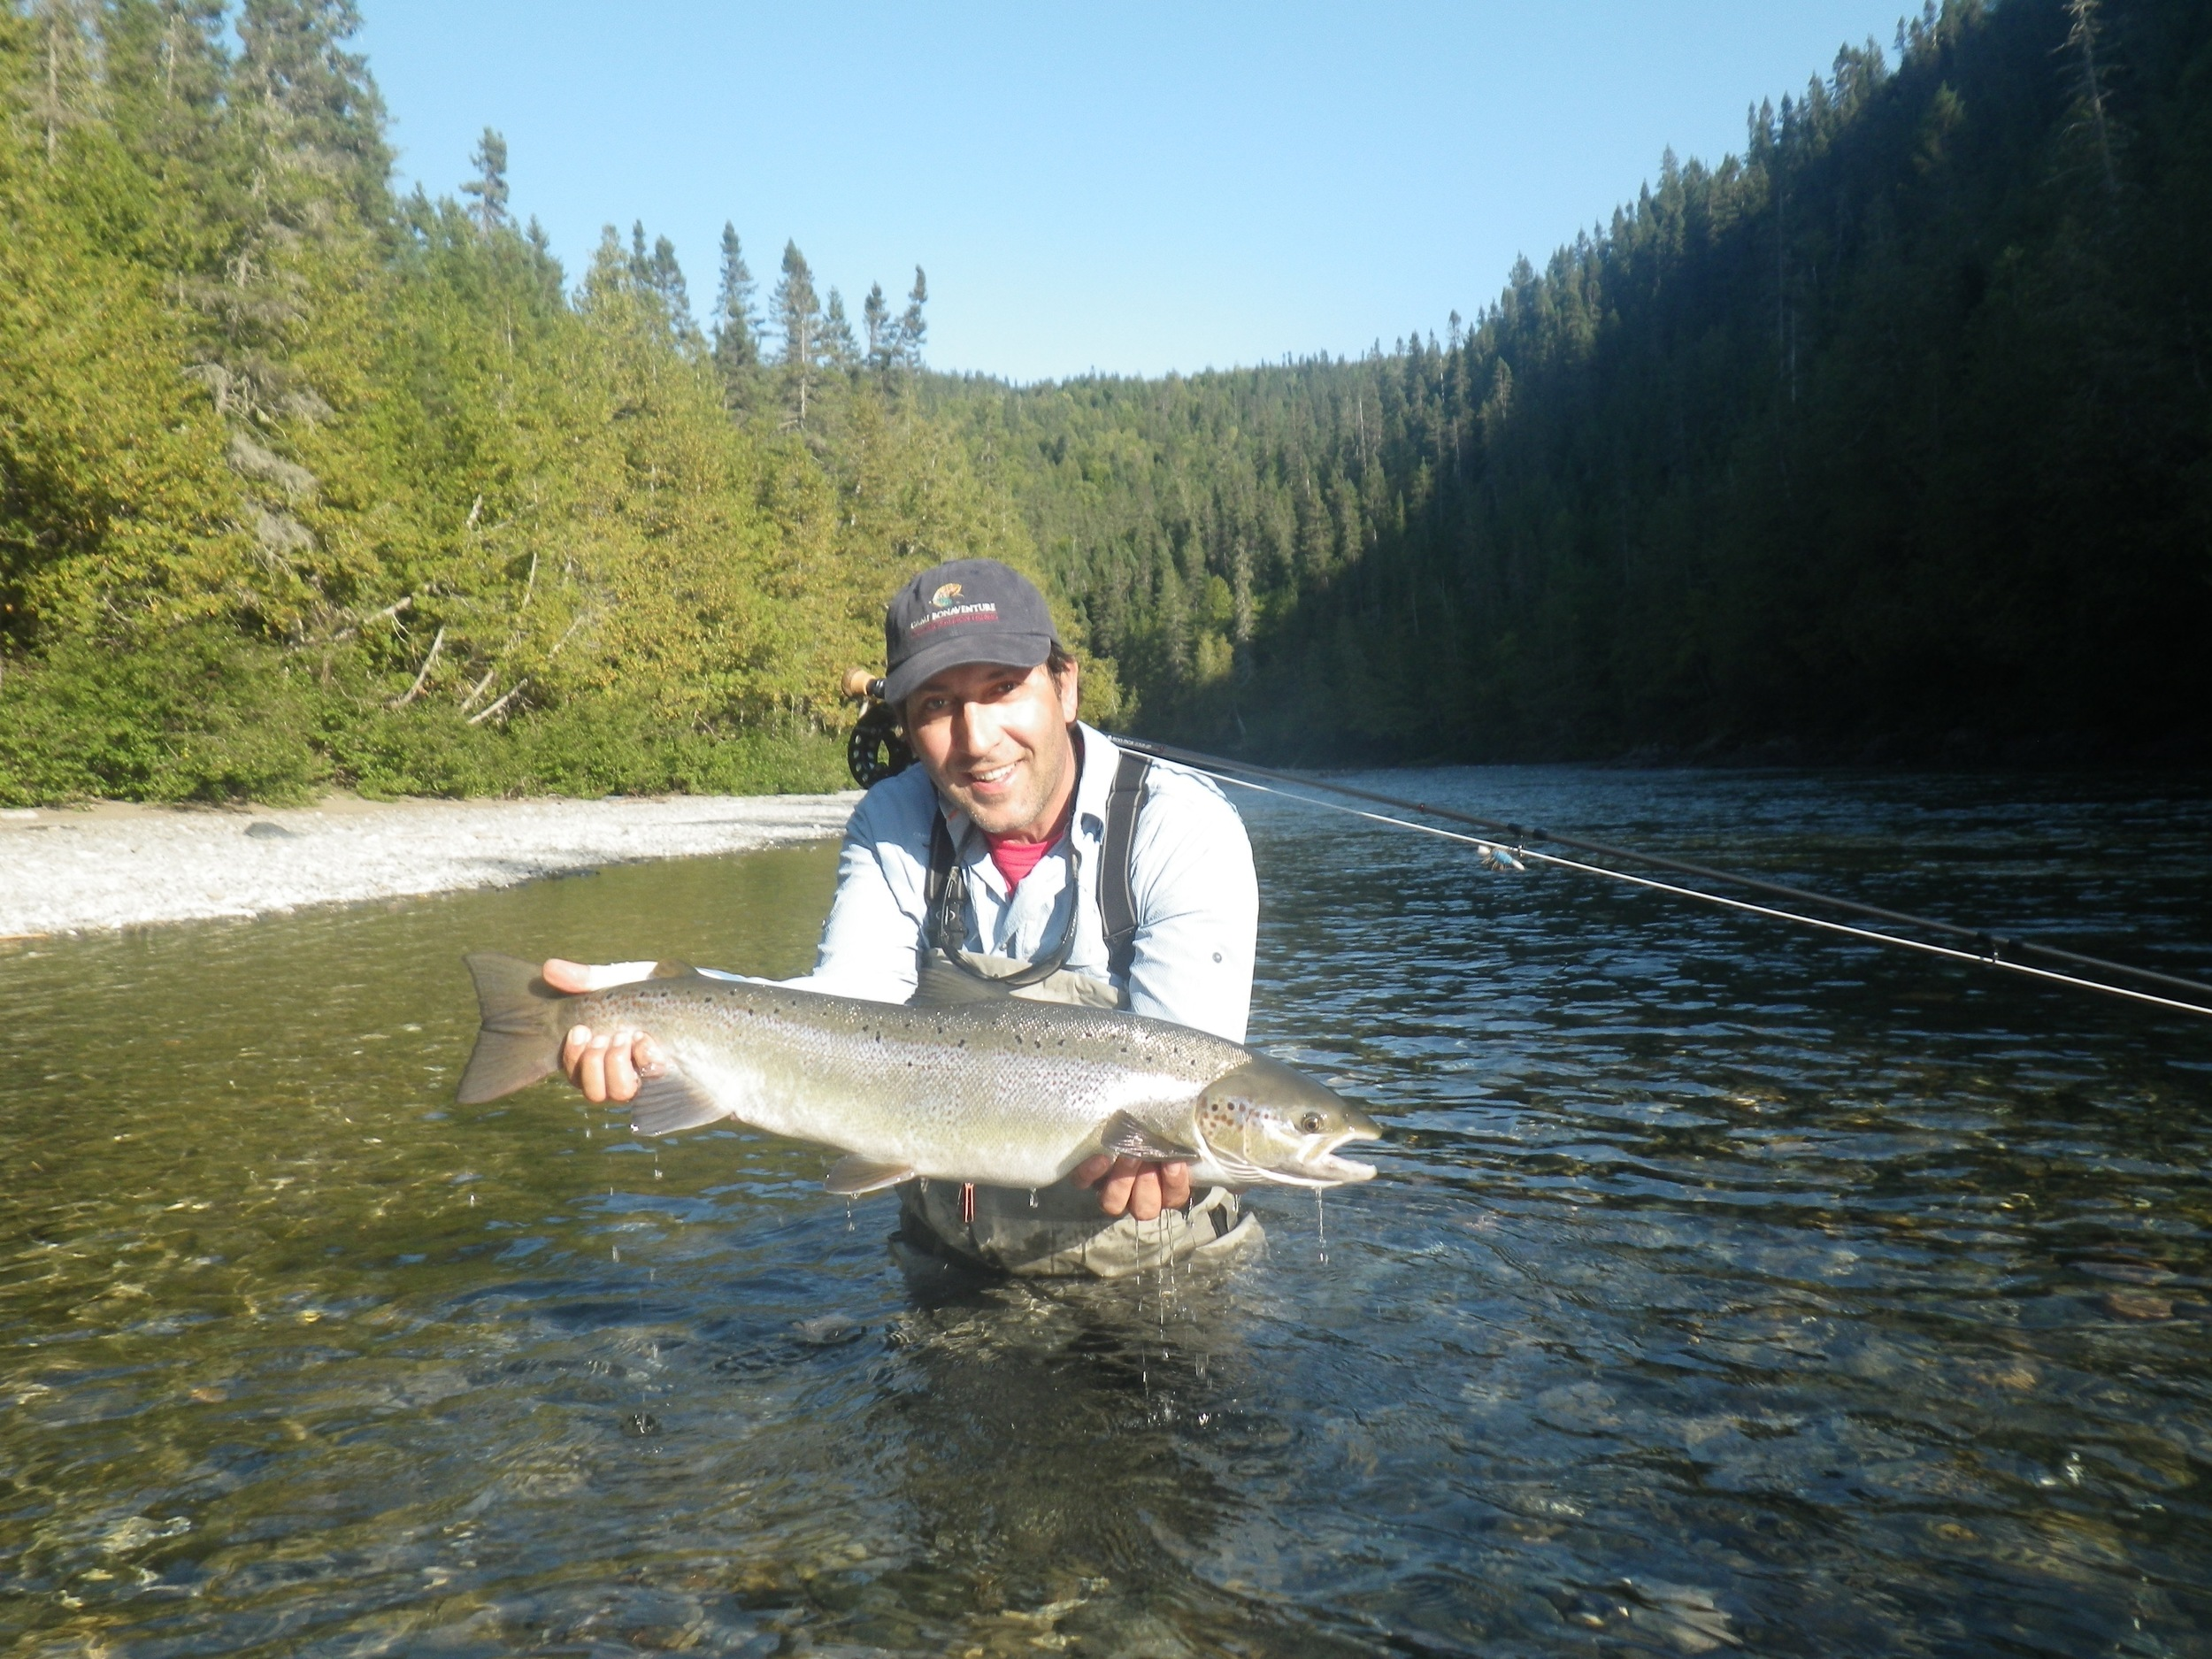 Claude Lombardo from New Caledonia with a fresh run fish on the Bonaventure.